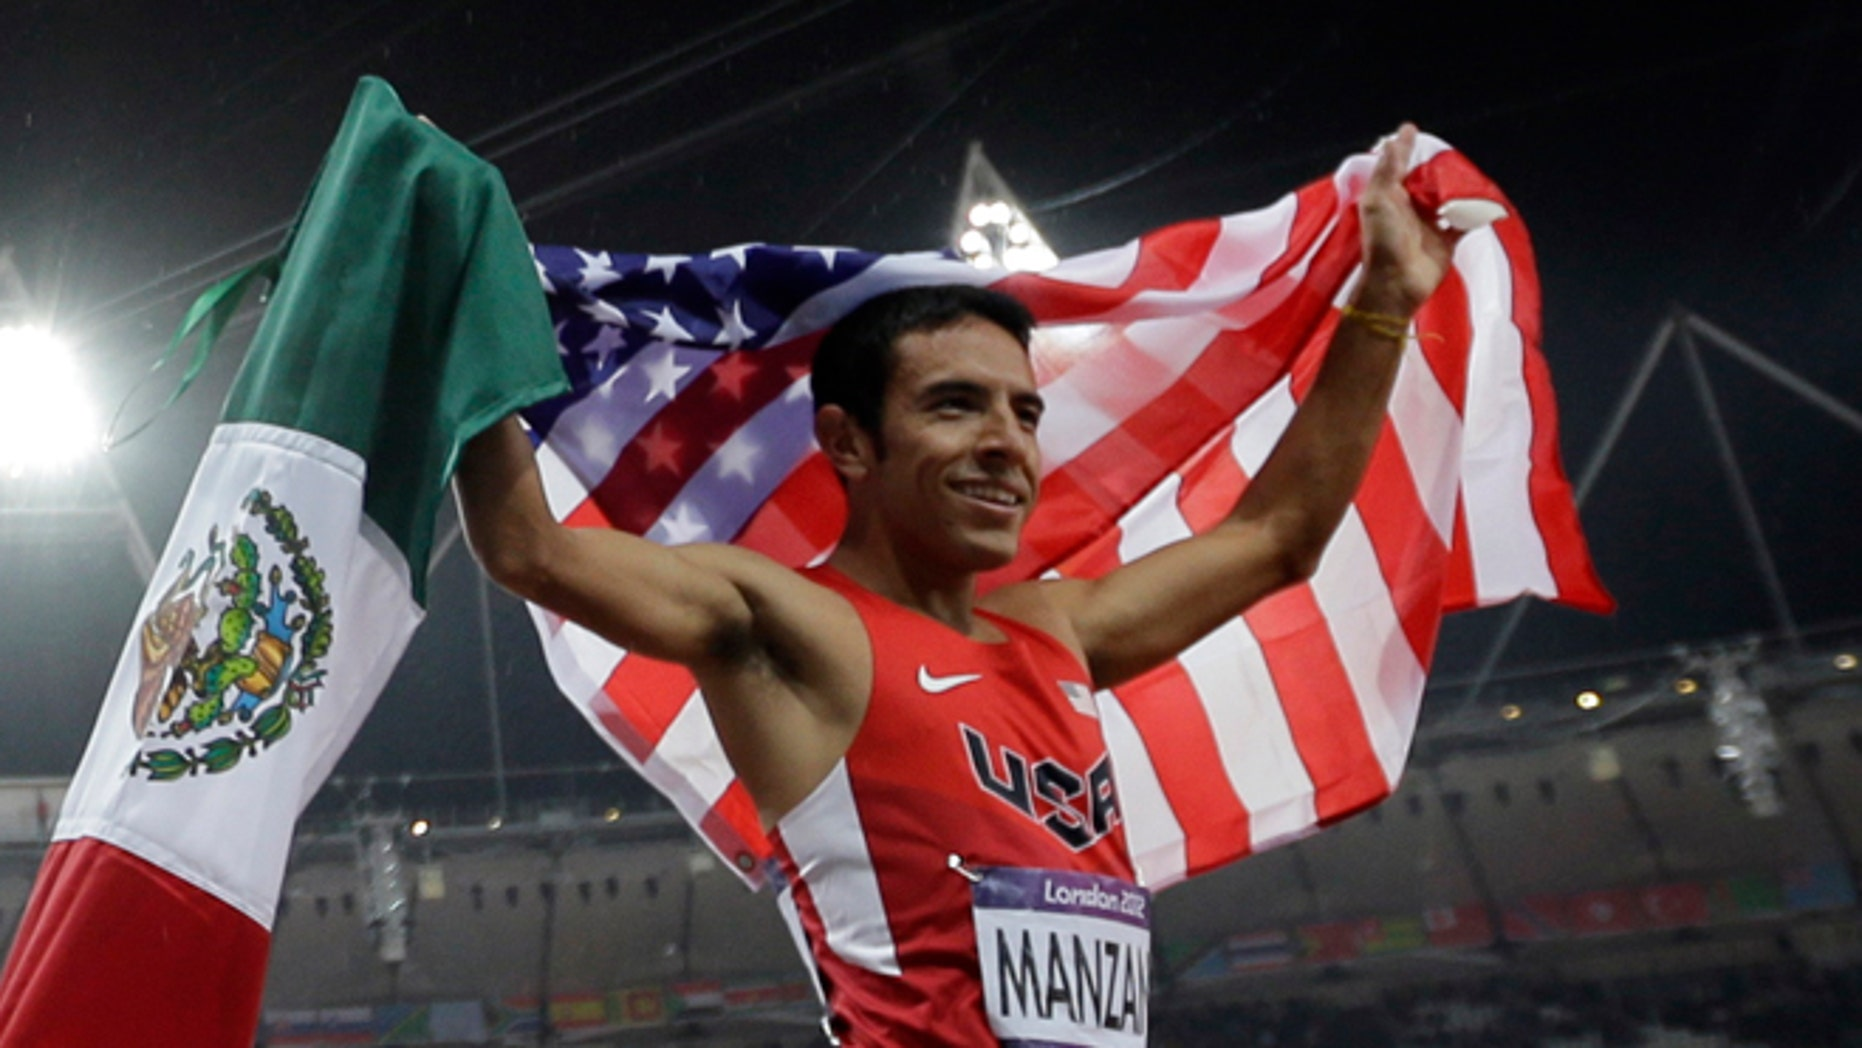 Gold medalist Taoufik Makhloufi of Algeria celebrates with silver medalist USA's Leonel Manzano after the men's 1500-meter during the athletics in the Olympic Stadium at the 2012 Summer Olympics, London, Tuesday, Aug. 7, 2012. (AP Photo/Matt Slocum)